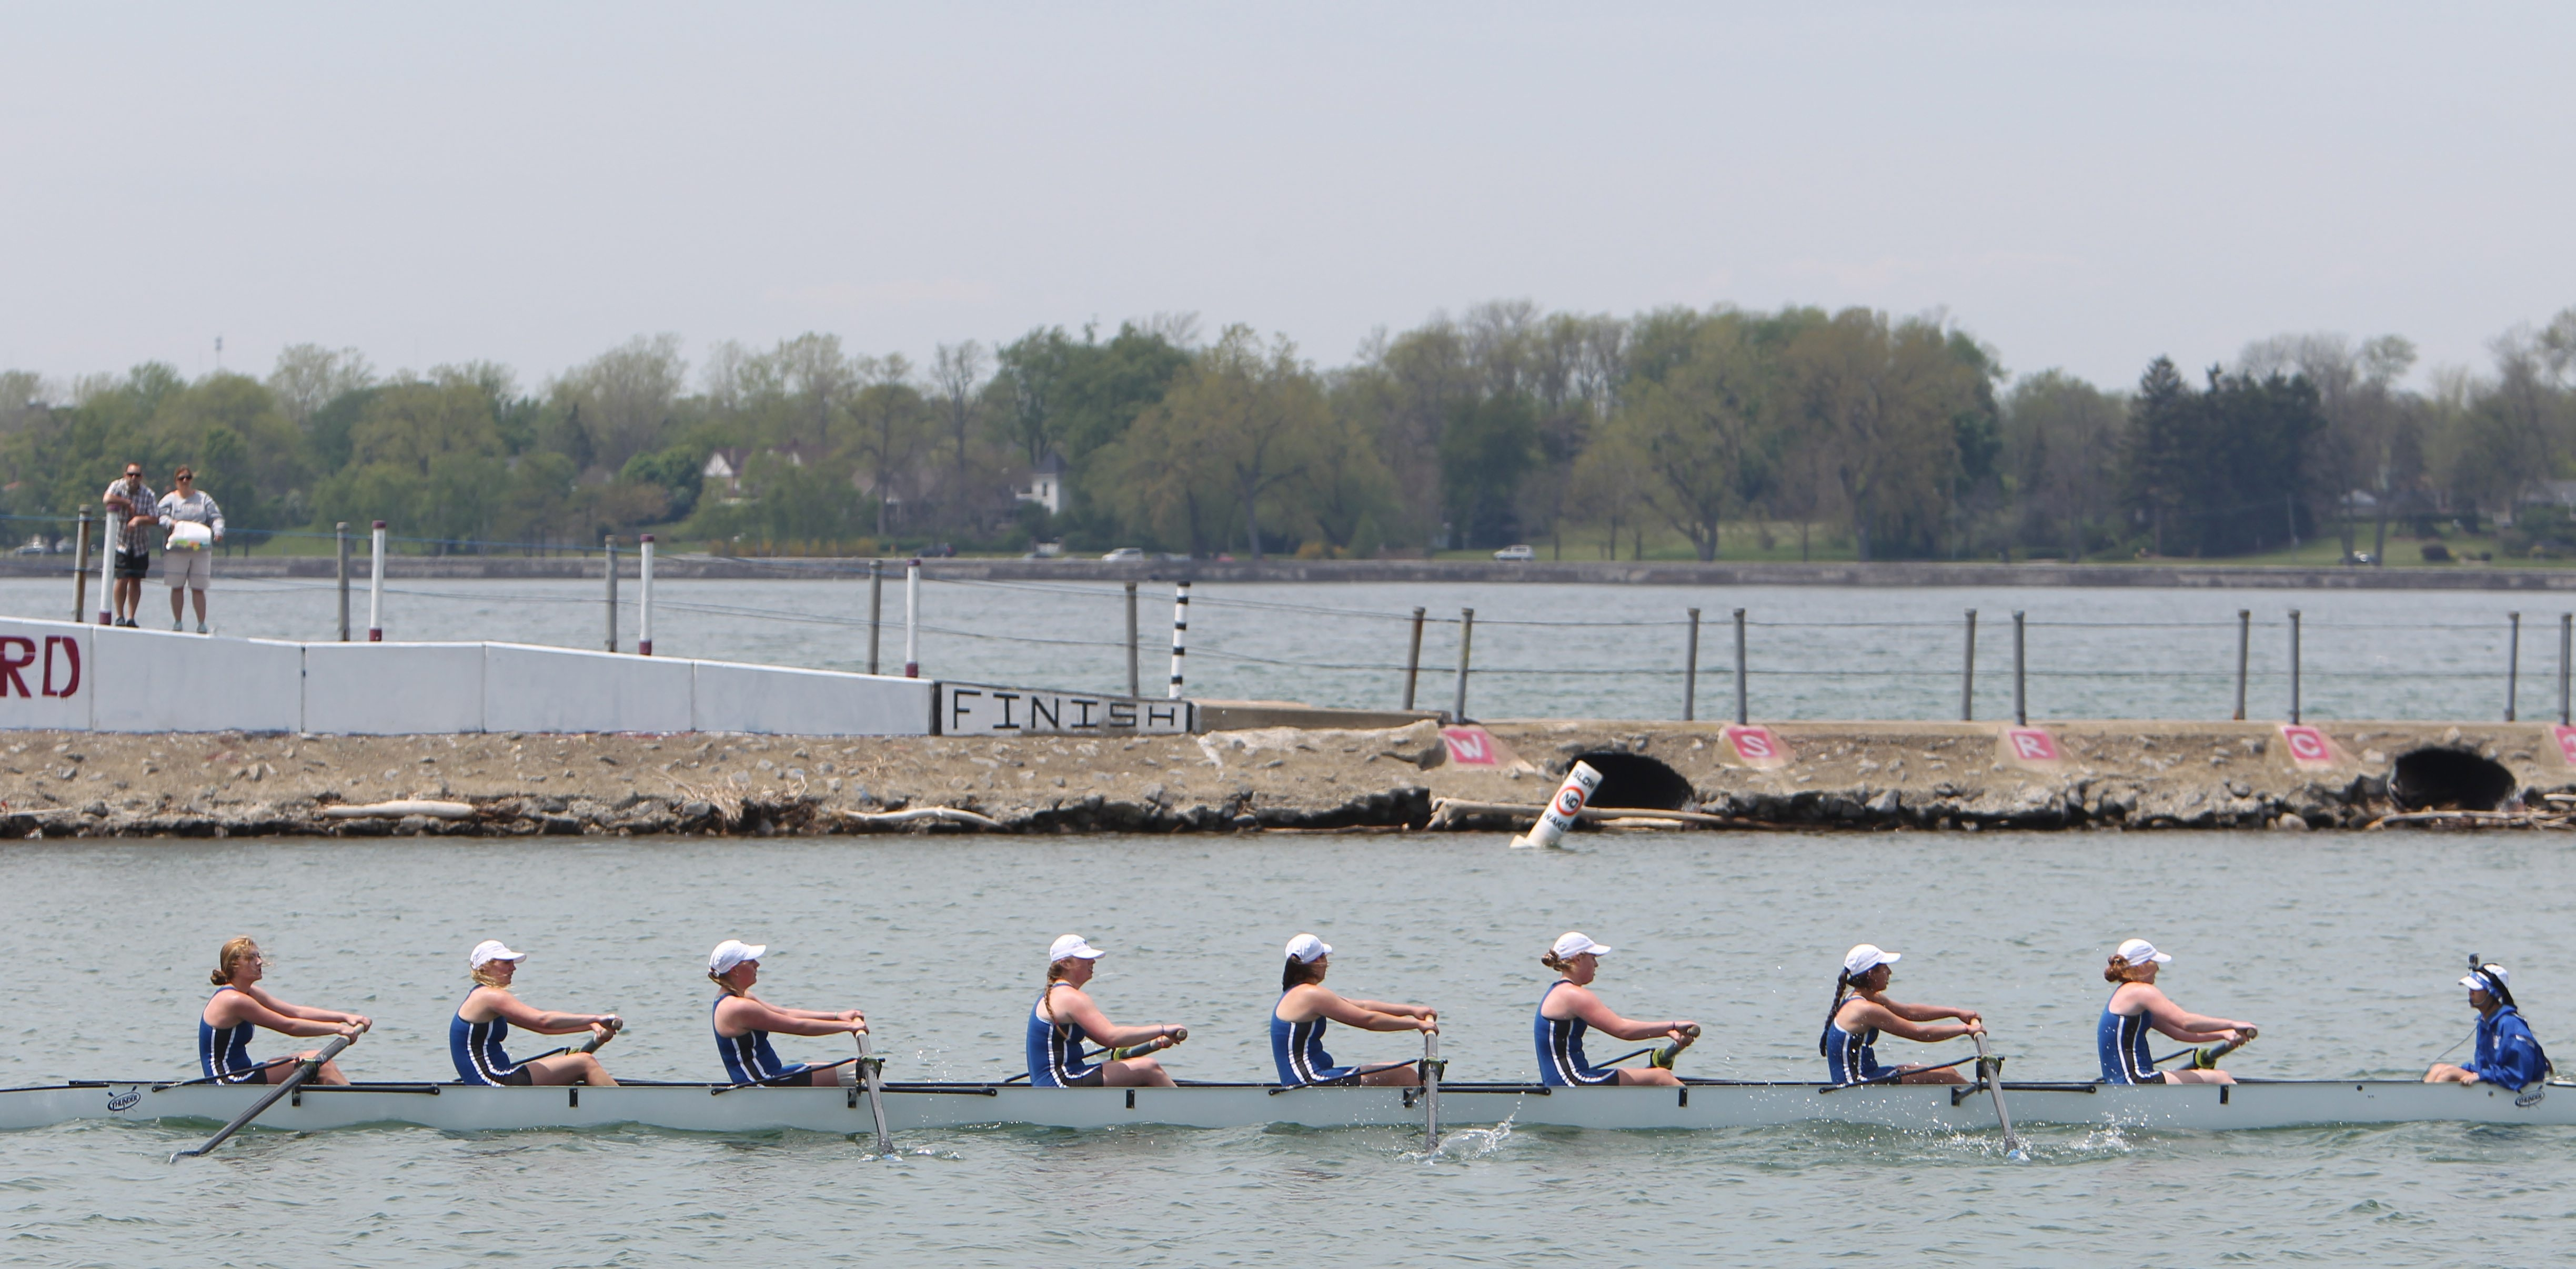 Mount St. Mary's junior eight is first to cross the finish line during the Fontana All-High Regatta at the West Side Rowing Club on Monday. Check out a photo gallery at buffalonews.com.